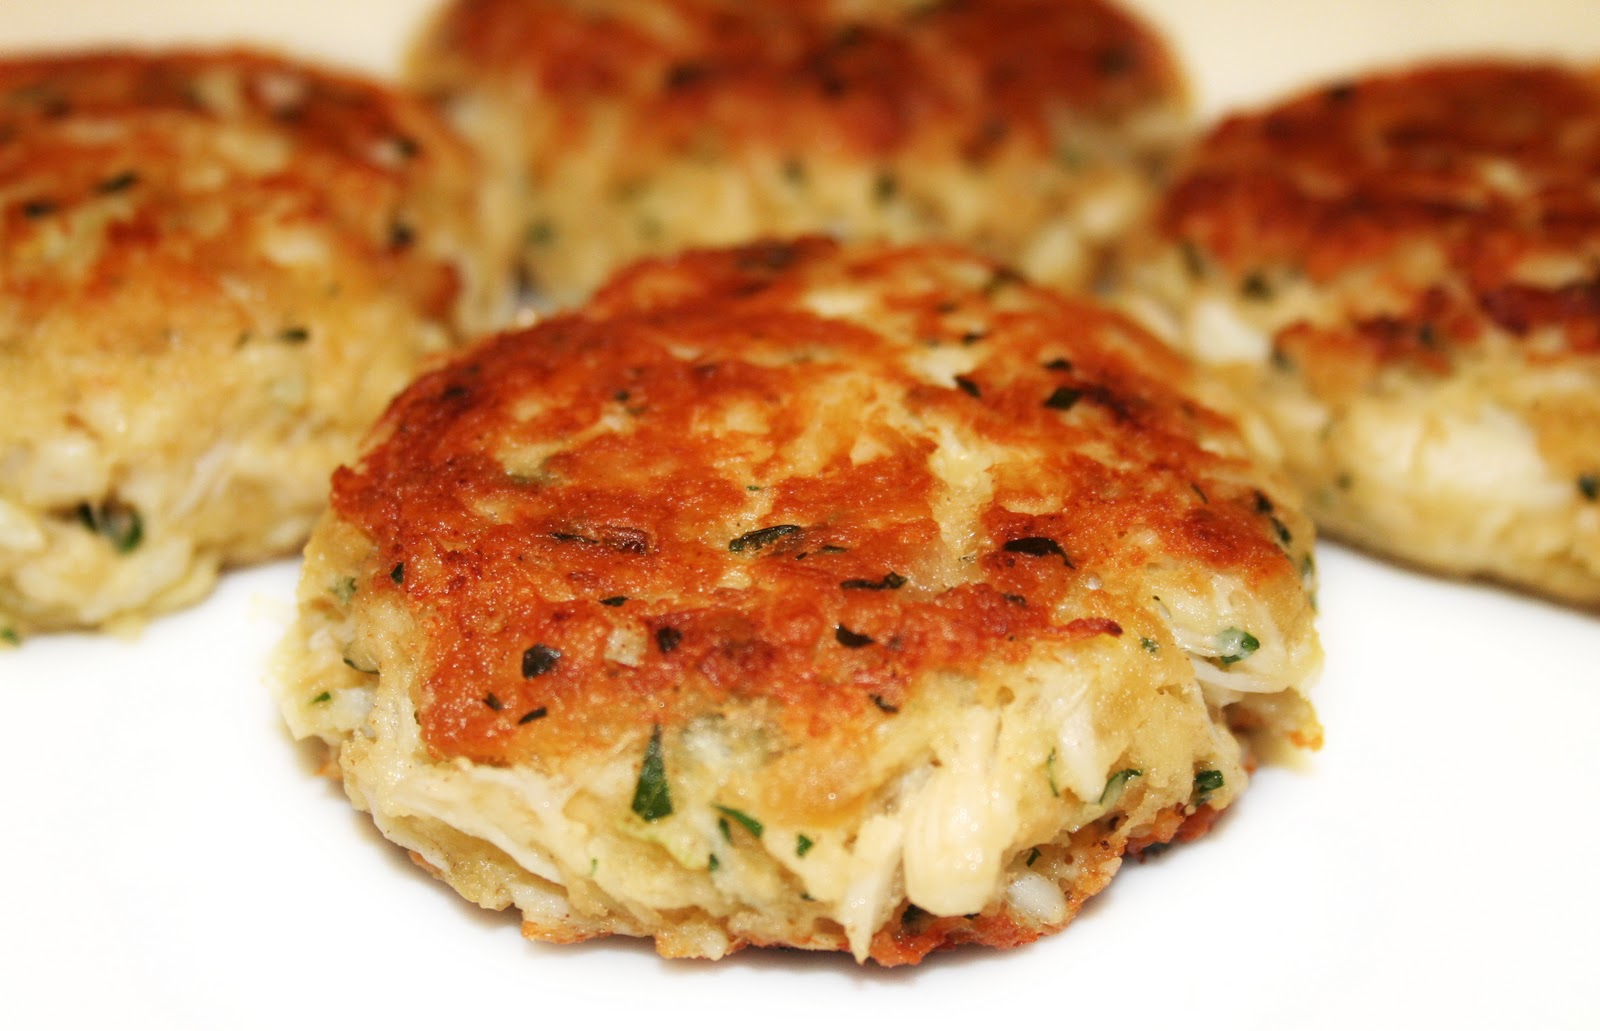 Crab Cake For Sale